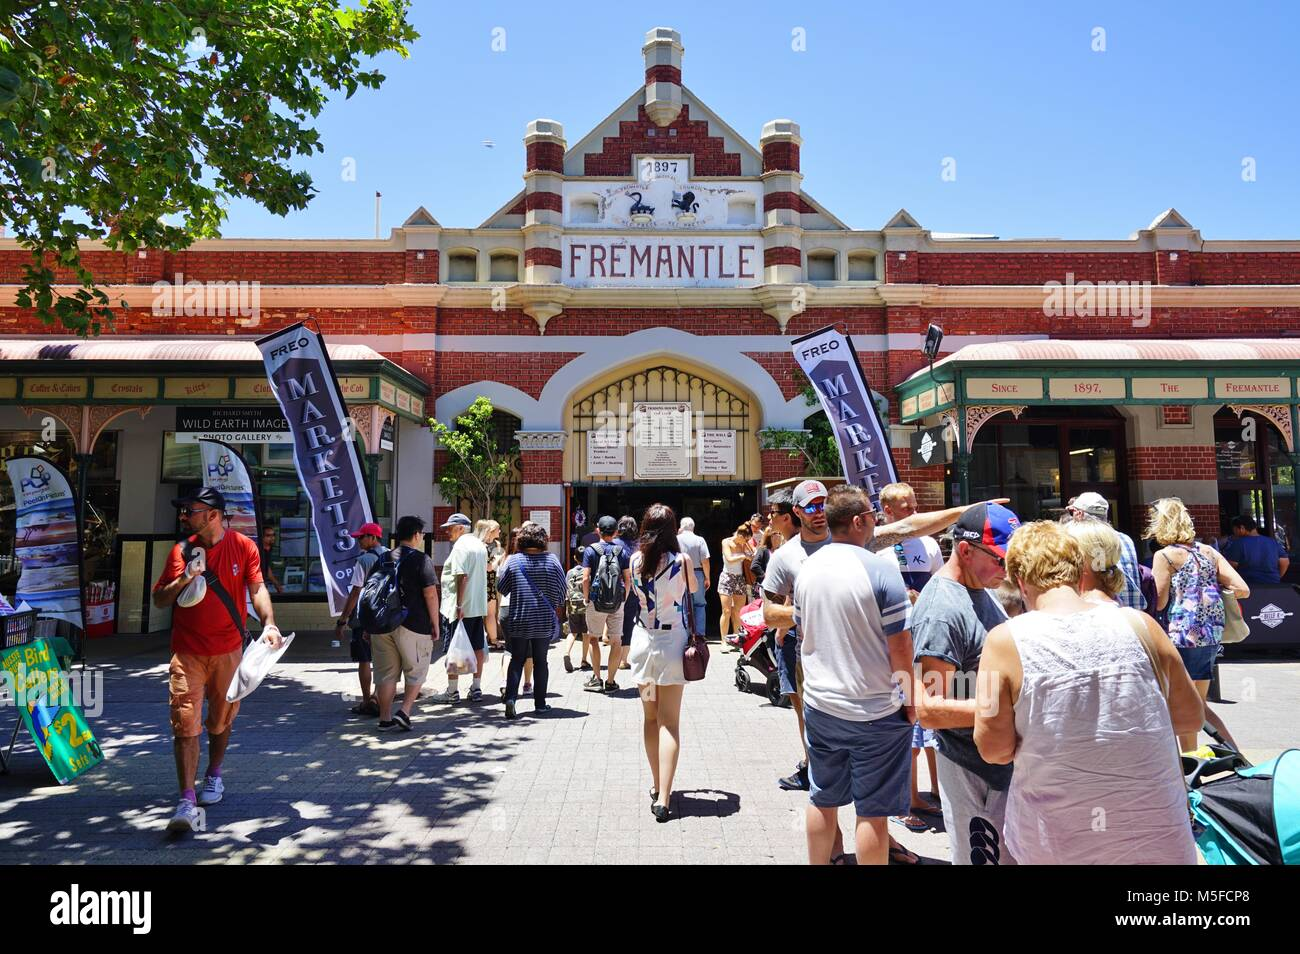 View of buildings and people on the street in downtown Fremantle, a town located near Perth in Western Australia. - Stock Image